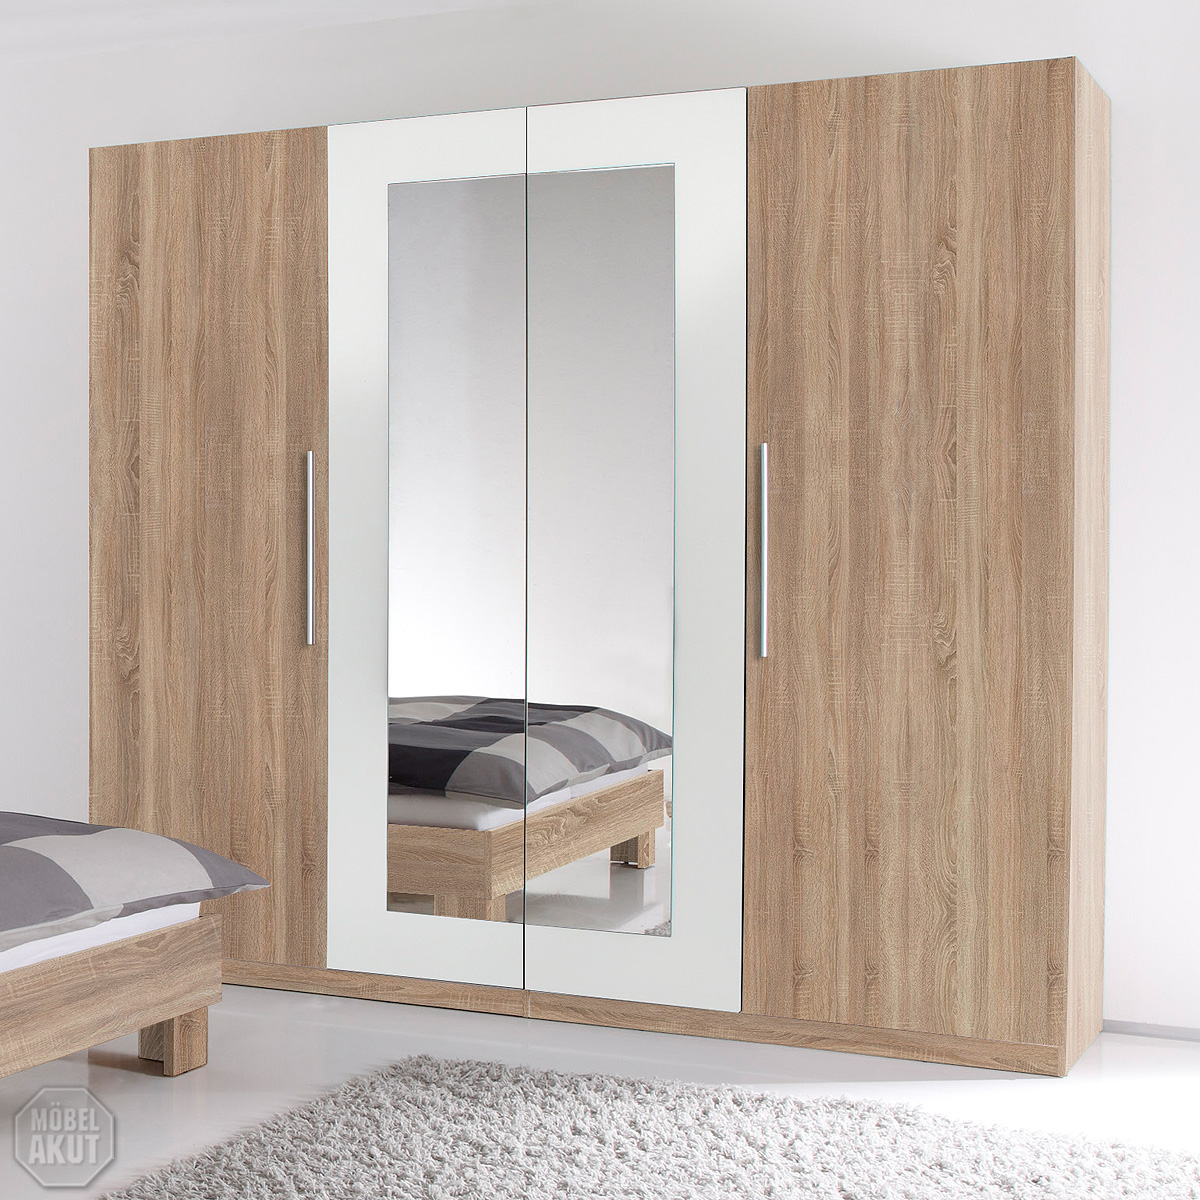 kleiderschrank martina schrank sonoma eiche s gerau und wei mit spiegel 228 cm ebay. Black Bedroom Furniture Sets. Home Design Ideas